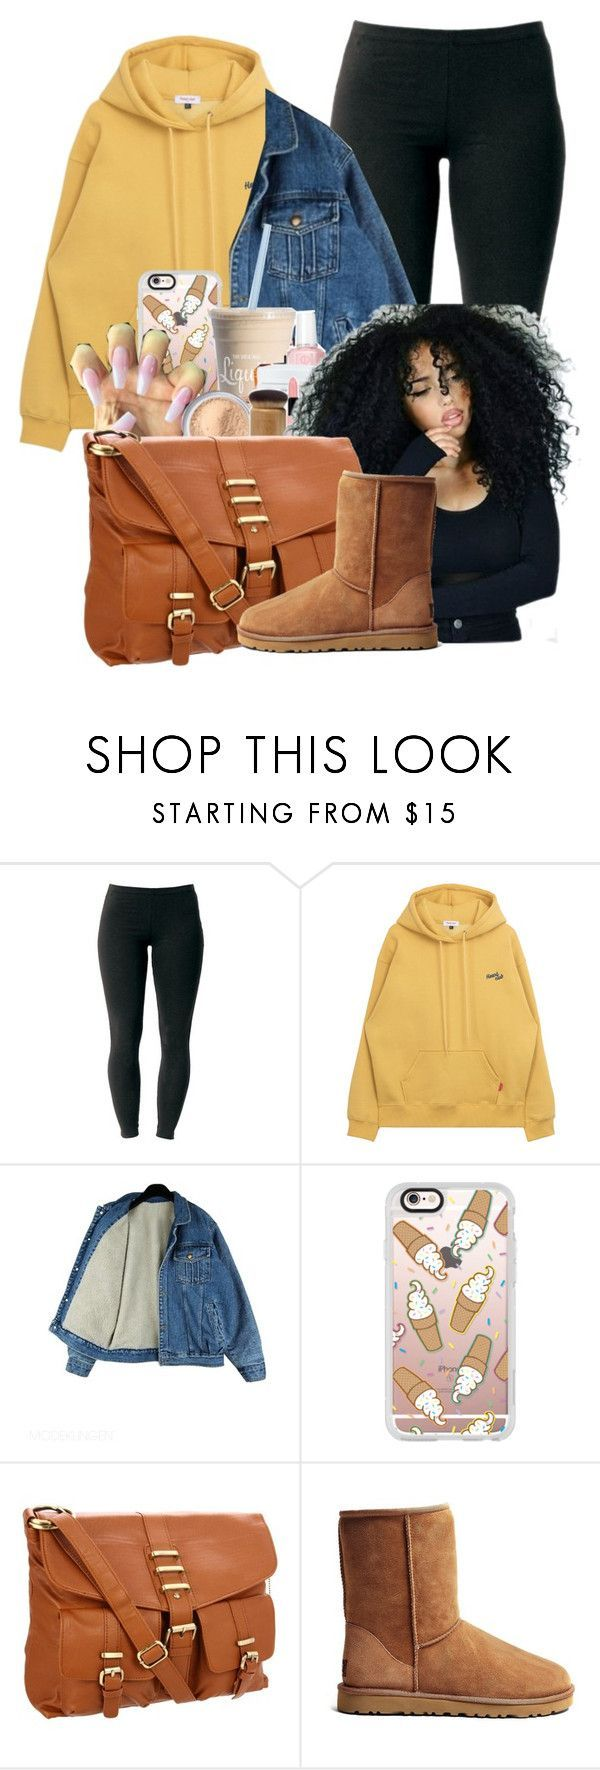 """Why Bother ?"" by melaninprincess-16 ❤ liked on Polyvore featuring Joe Browns, Casetify, Big Buddha and UGG Australia"